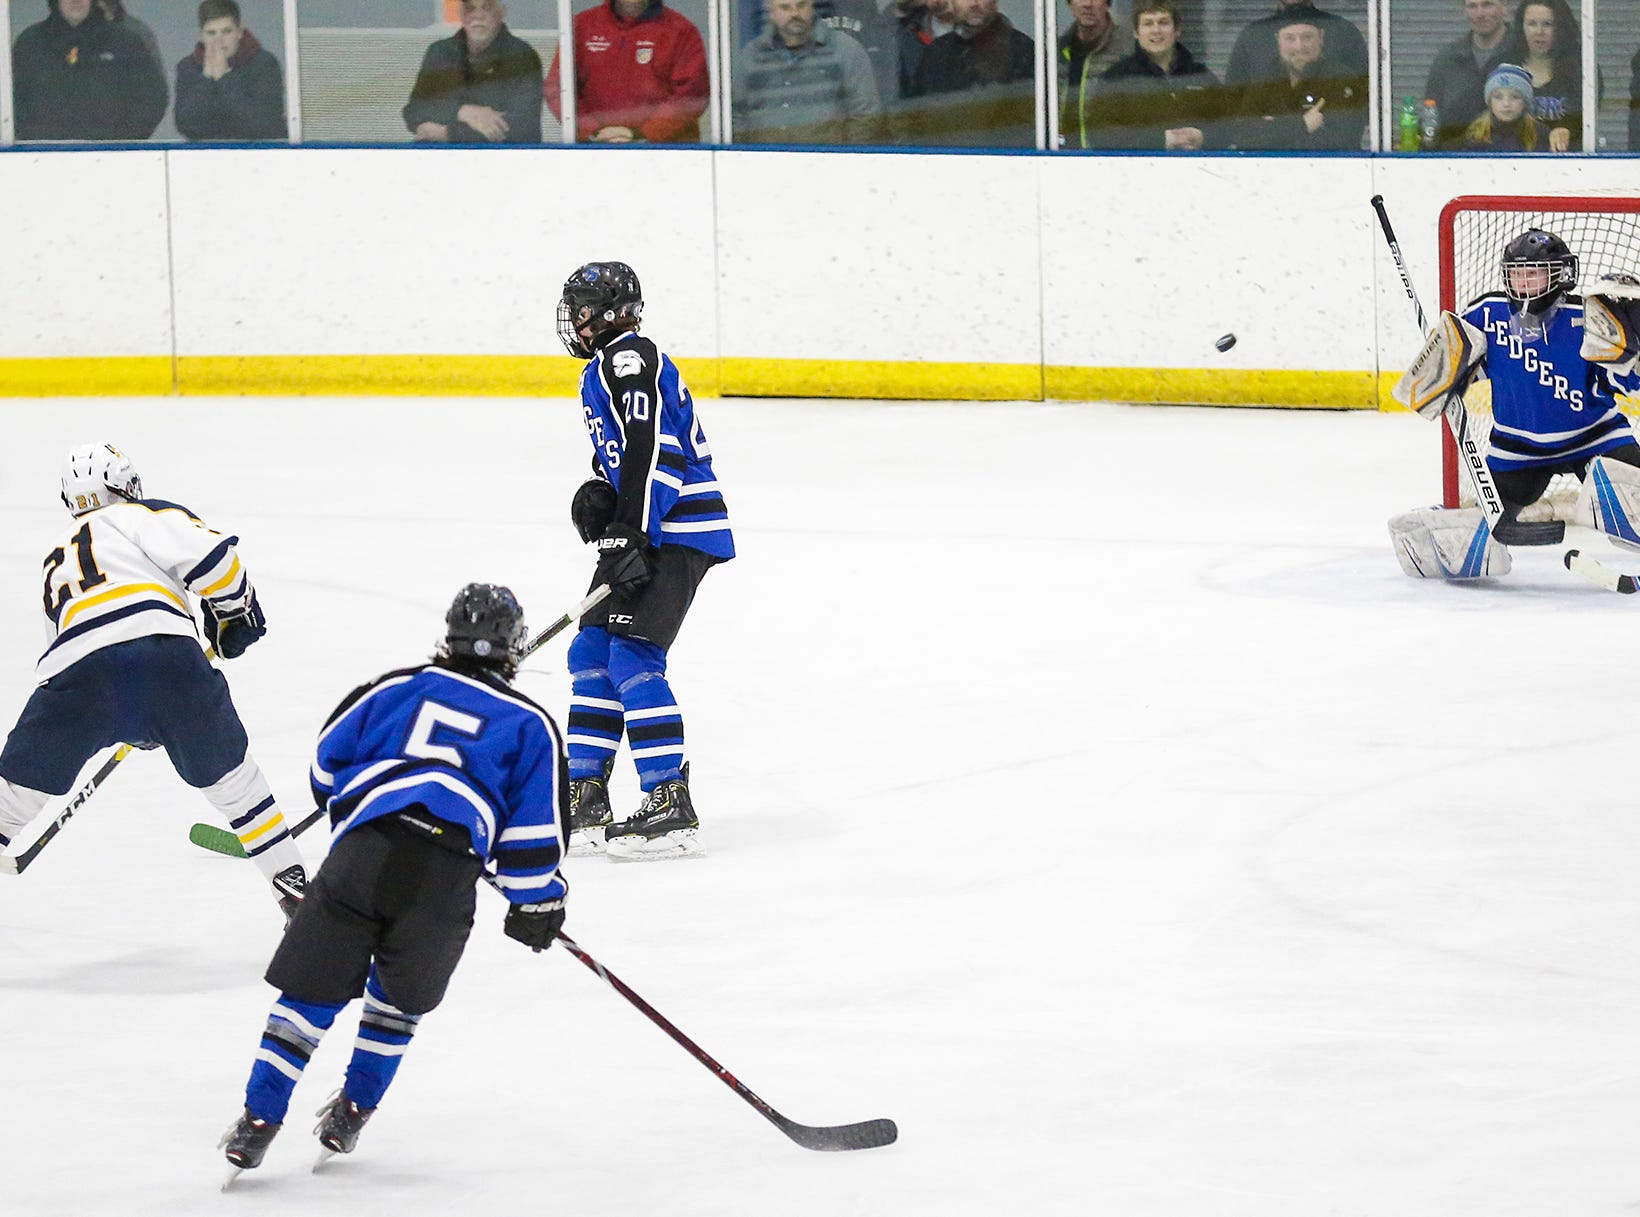 St. Mary's Springs boys co-op hockey's Joey Koleno gets in position to stop a puck hit by University School of Milwaukee's Casey Roepke Friday, February 22, 2019 during their WIAA sectional final game in Fond du Lac. University School won the game 6-1 and will advance to state. Doug Raflik/USA TODAY NETWORK-Wisconsin